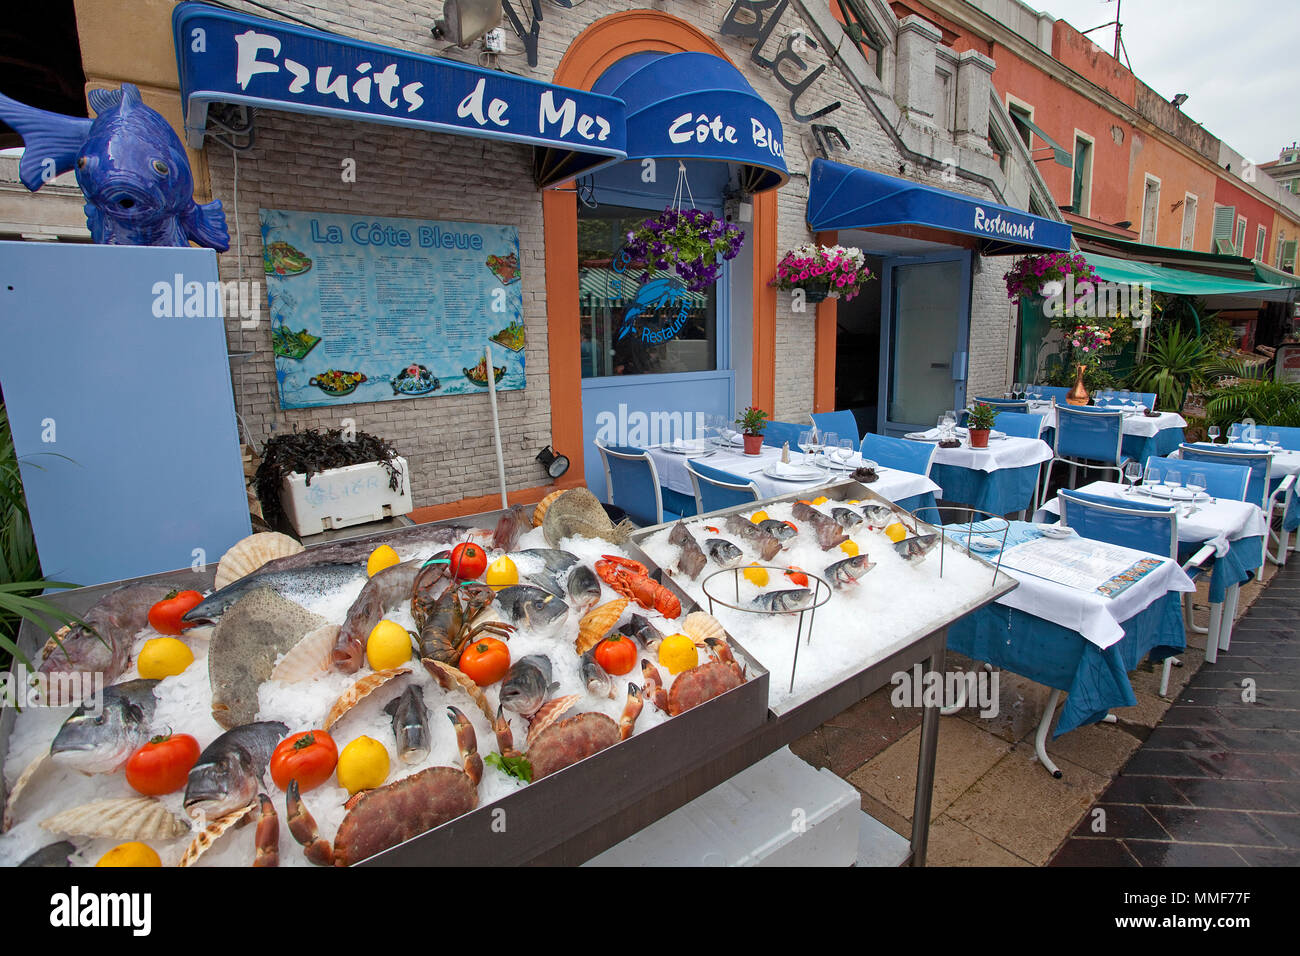 Seafood restaurant at place Cours Saleya, Nice, Côte d'Azur, Alpes-Maritimes, South France, France, Europe - Stock Image